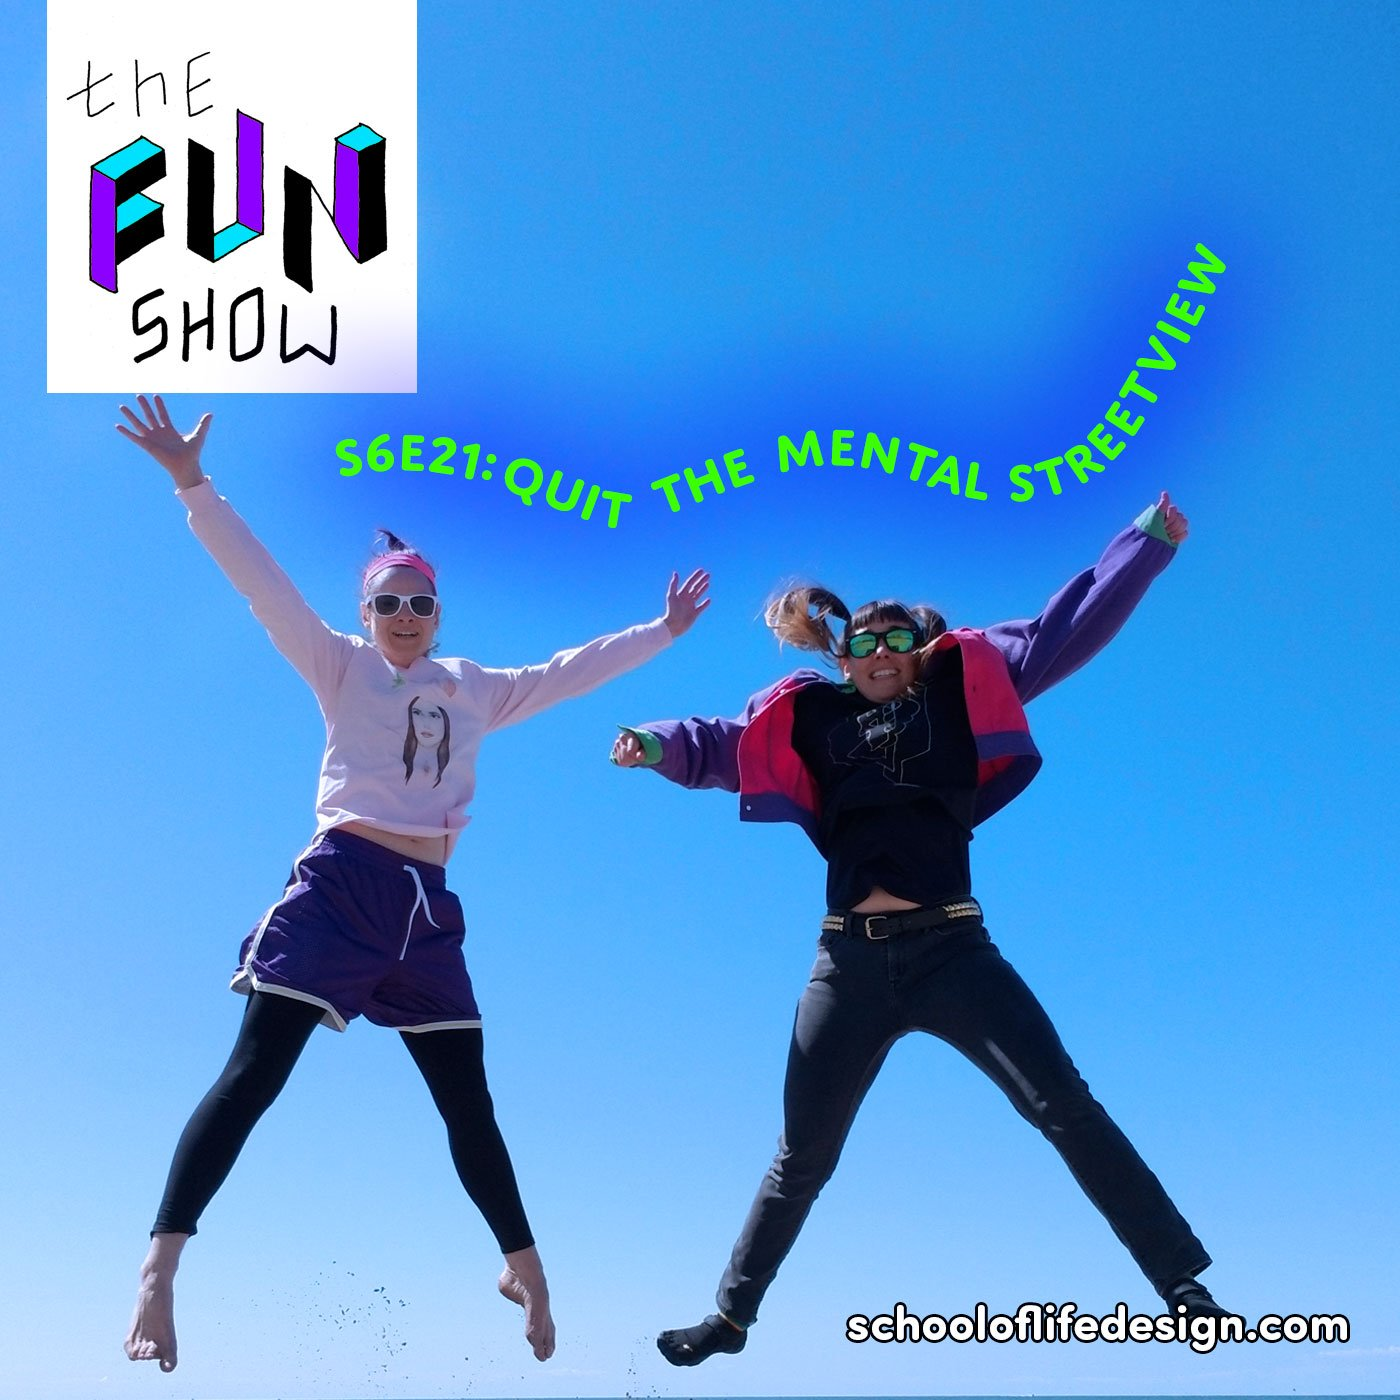 The Fun Show S6E21: Quit the Mental Streetview